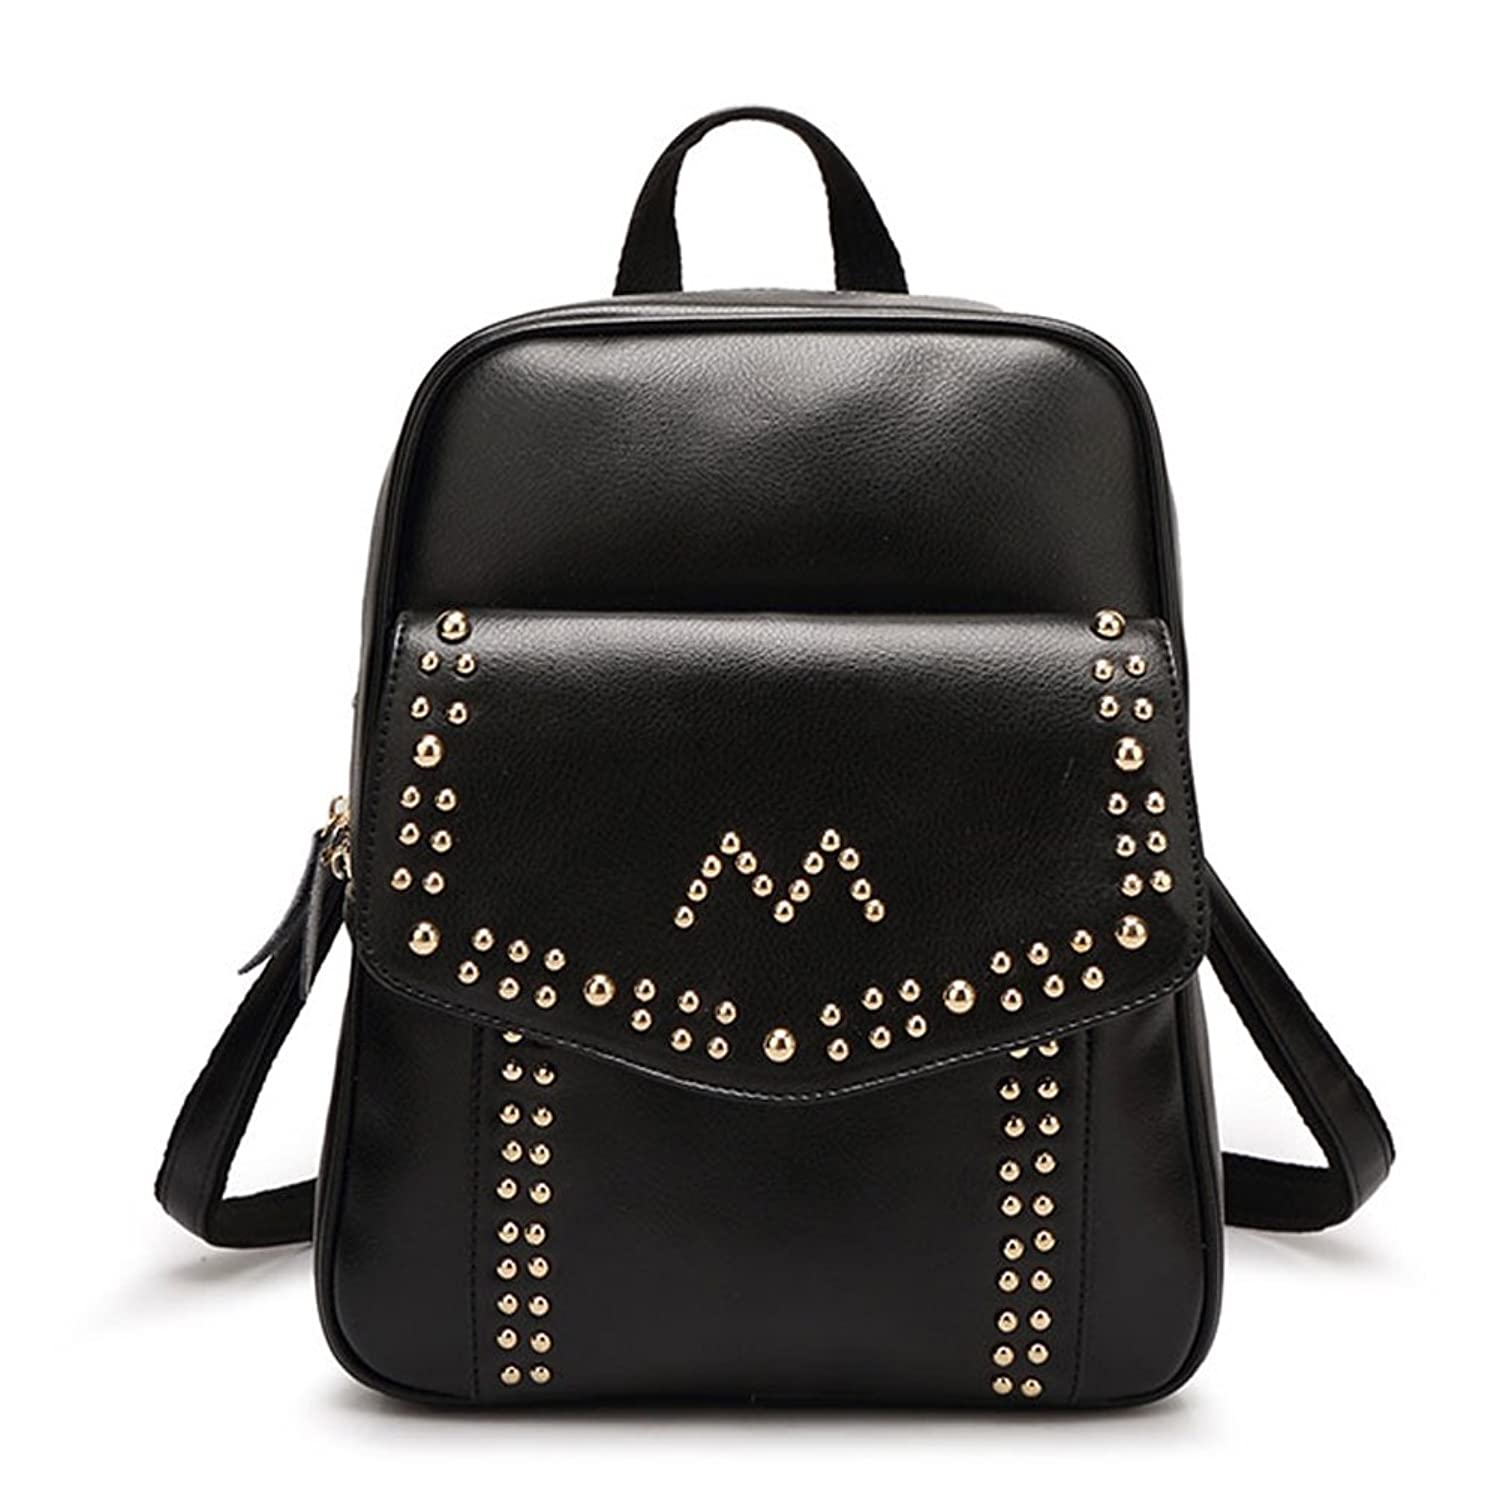 New fashion cross body shoulder hand bags for women 0522M